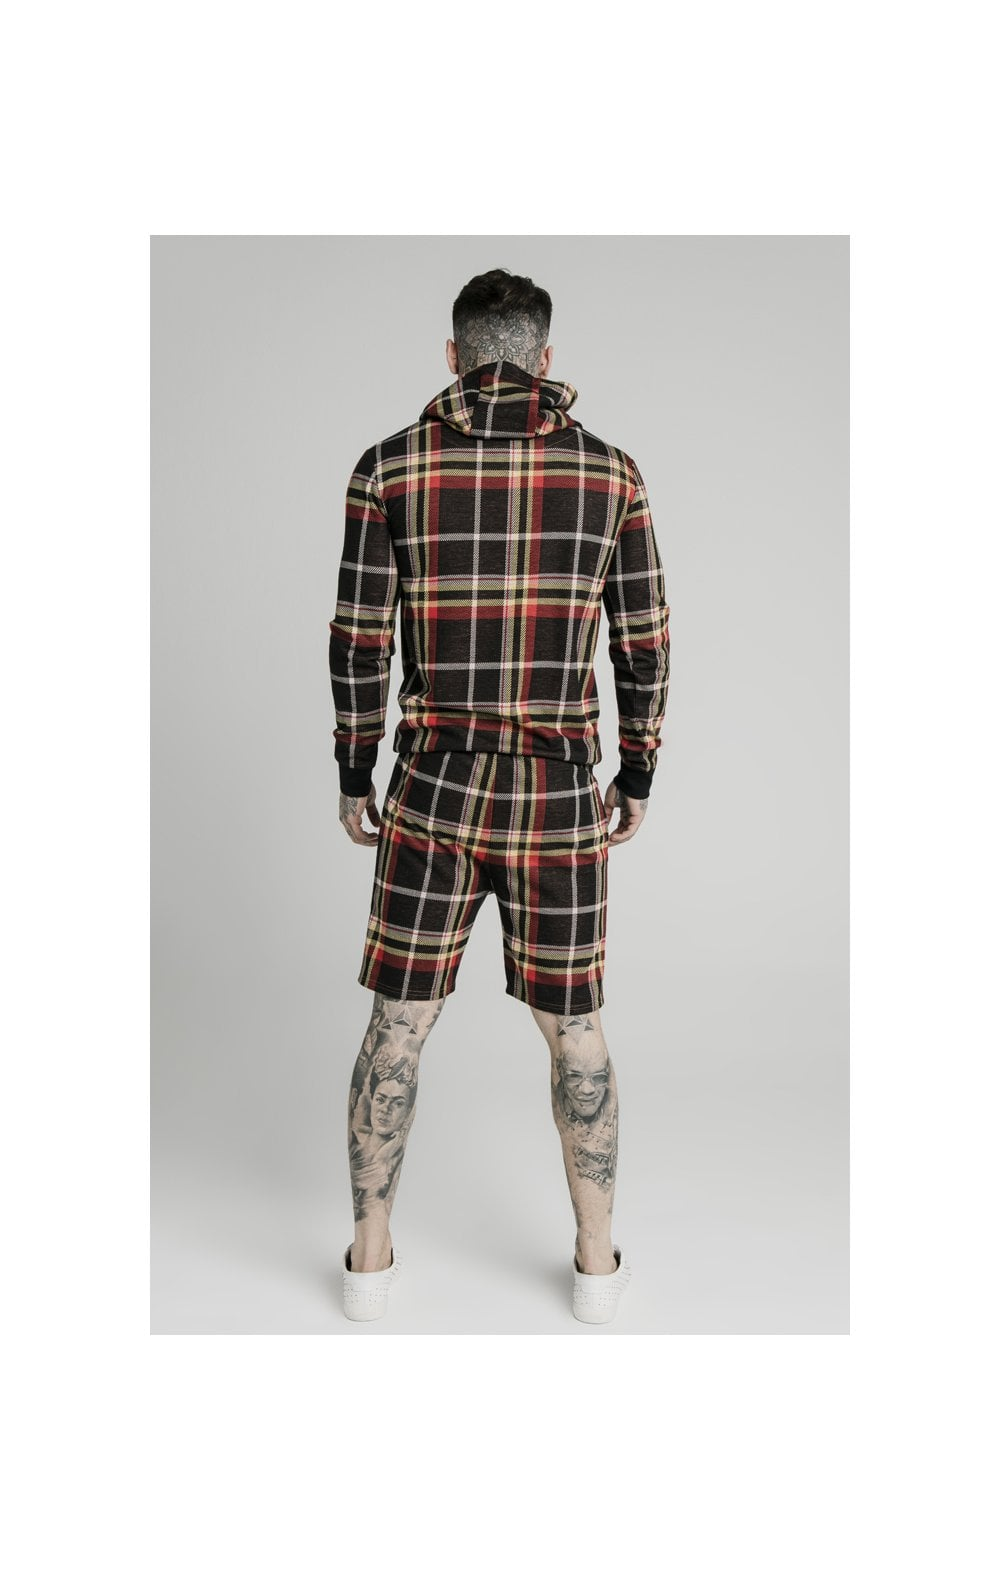 Load image into Gallery viewer, SikSilk Smart Overhead Hoodie Multi Grain Check (5)